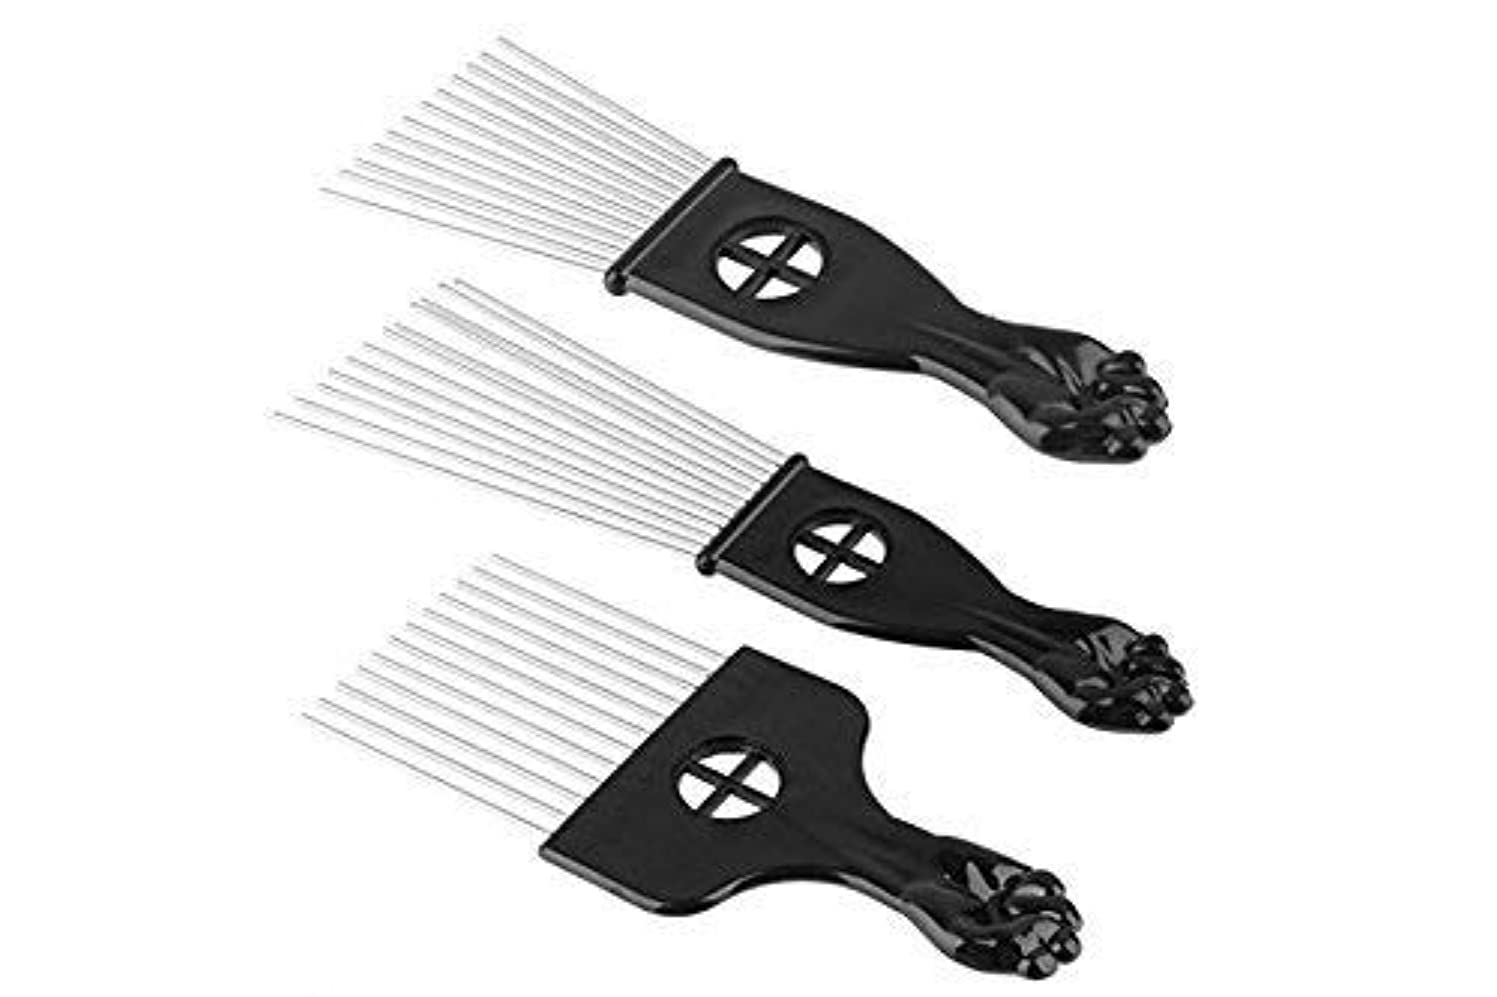 マインドフル振る舞いダム3Pc Metal Hair Styling Pik Afro Pick Comb For Volume & Tangles Black Fan Fist Hand Model [並行輸入品]